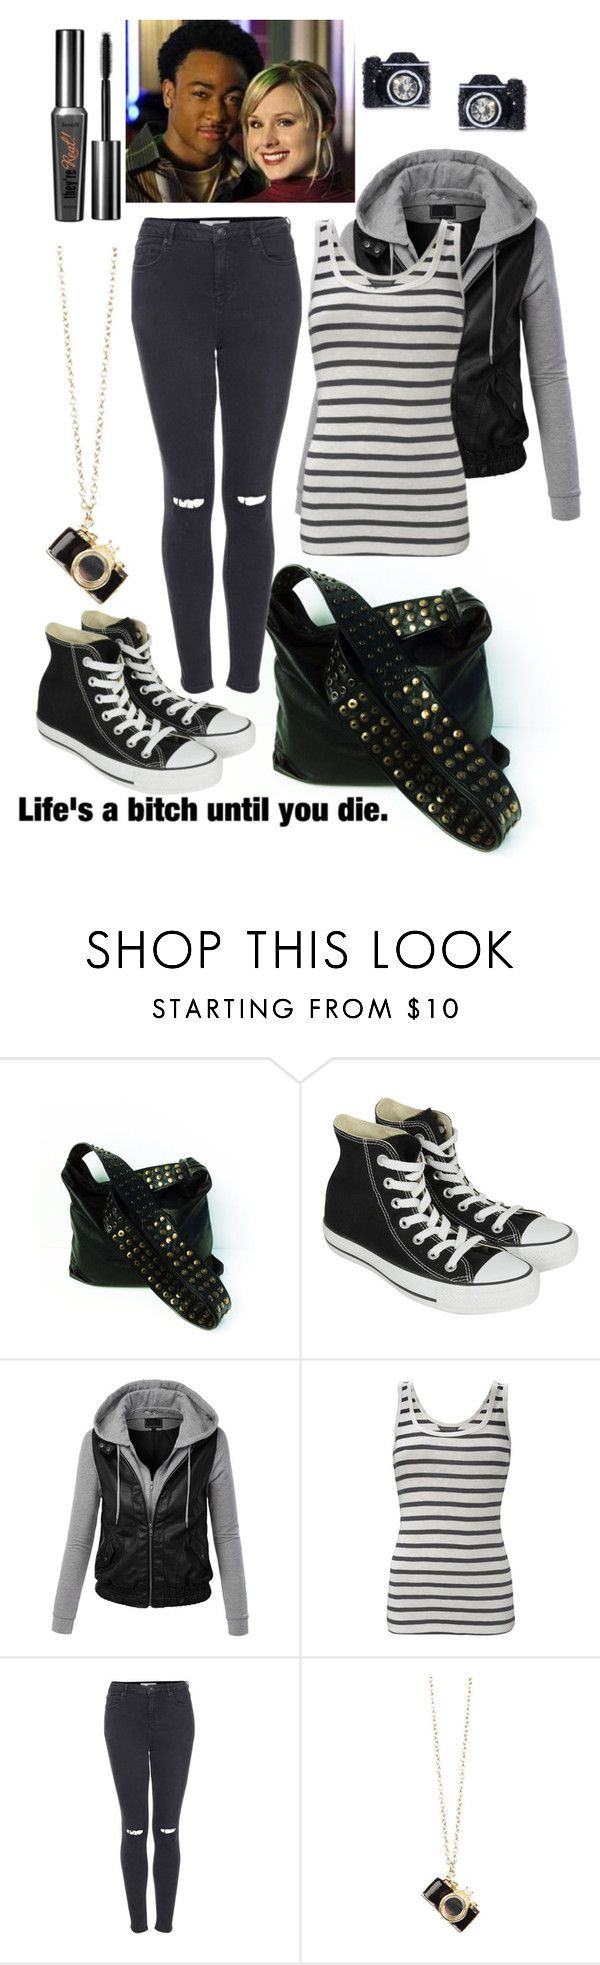 """""""Veronica Mars Movie"""" by rubyisnotonfire ❤ liked on Polyvore featuring Converse, LE3NO, French Connection, Topshop, Betsey Johnson, VeronicaMars and TeamLogan"""